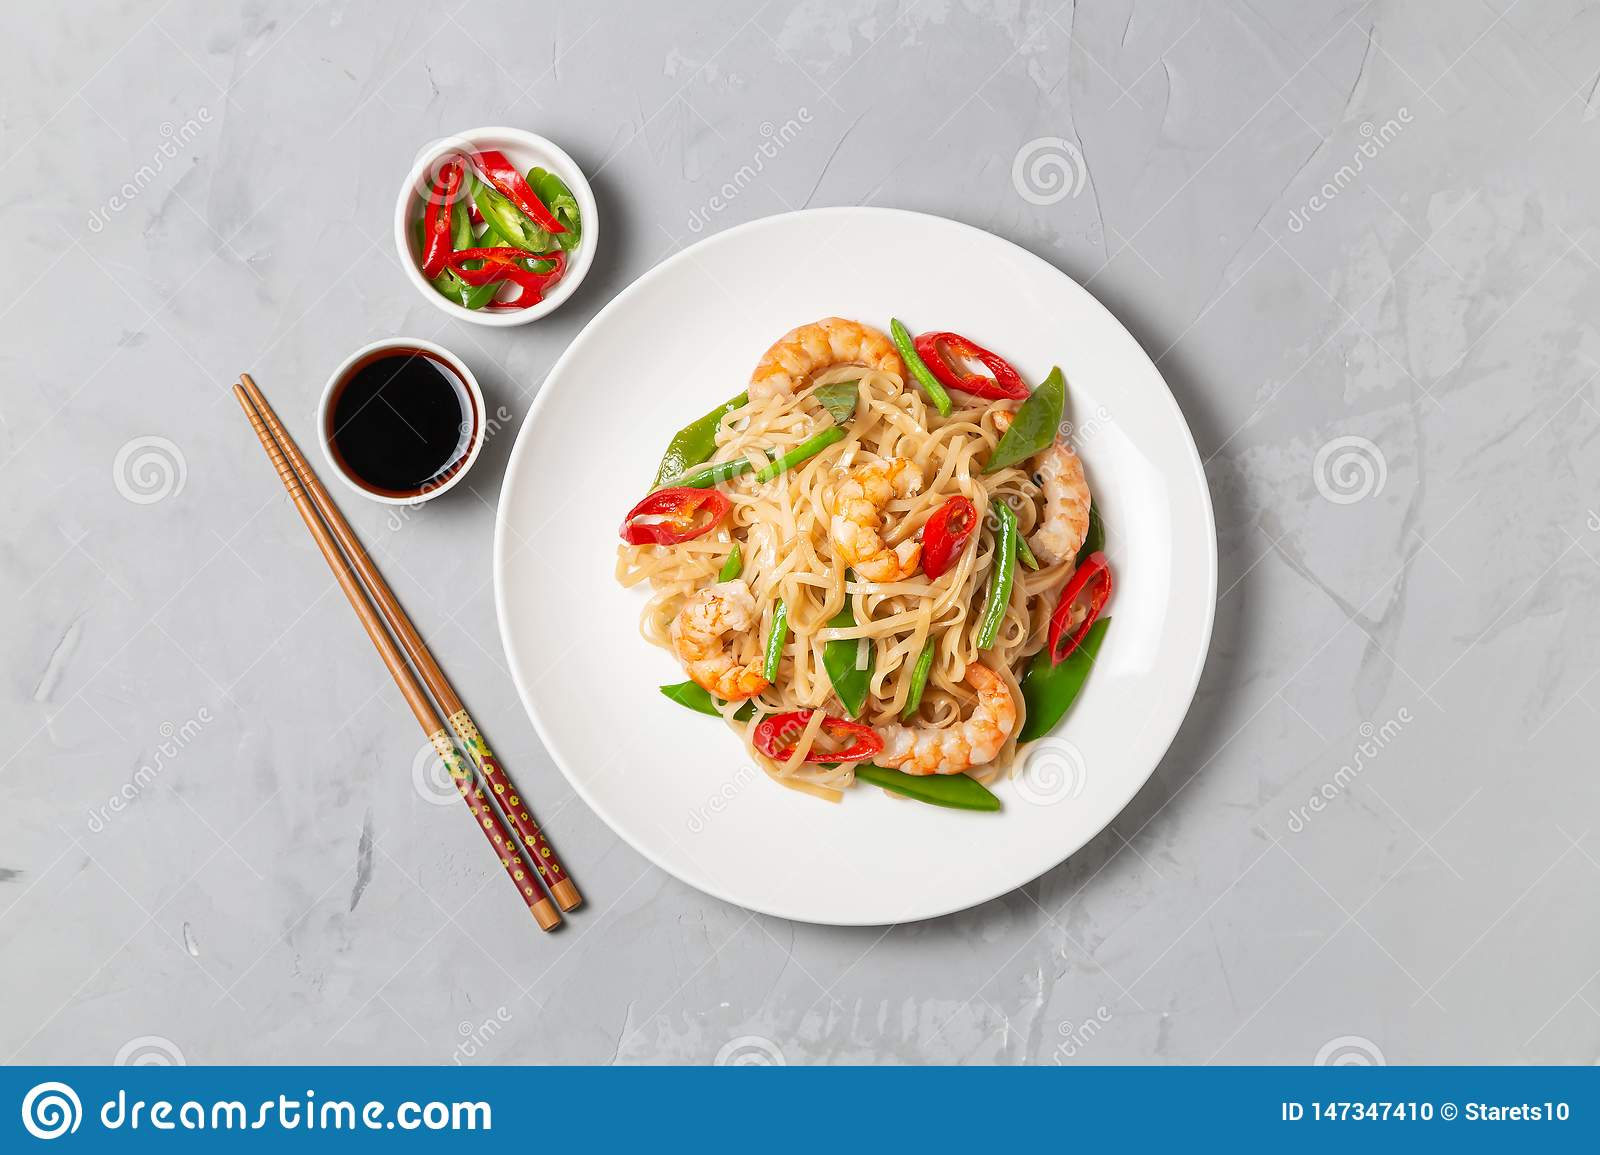 Asian dish of fried rice noodles with shrimp and vegetables. The view from the top. Copy-space.